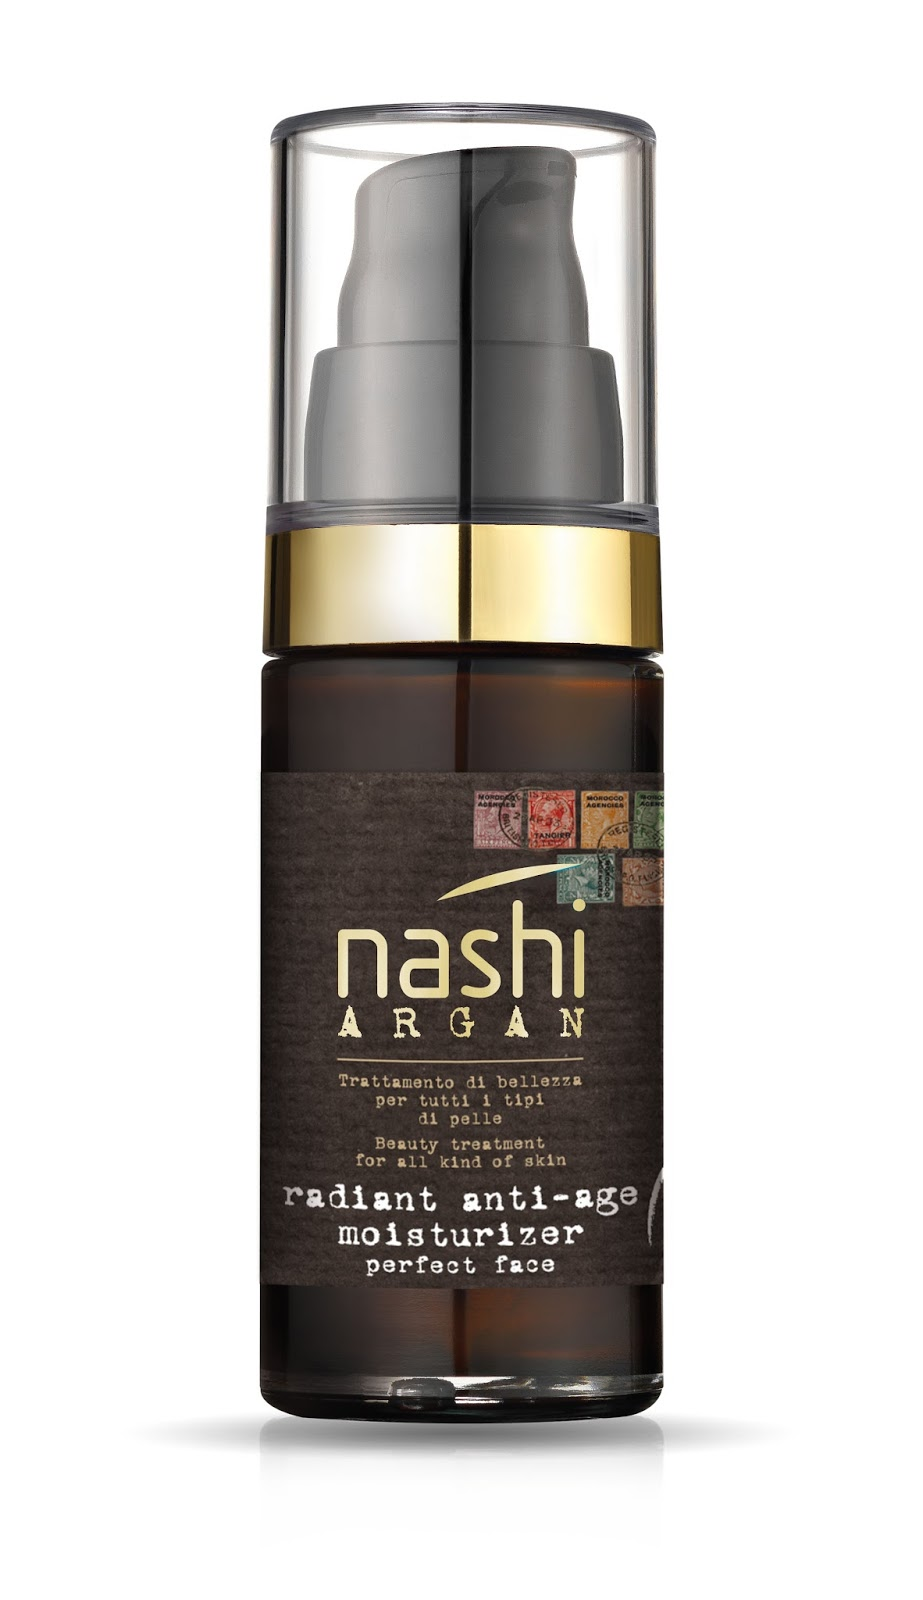 Preview: Radiant Anti-Age Moisturizer Siero Viso - Nashi Argan